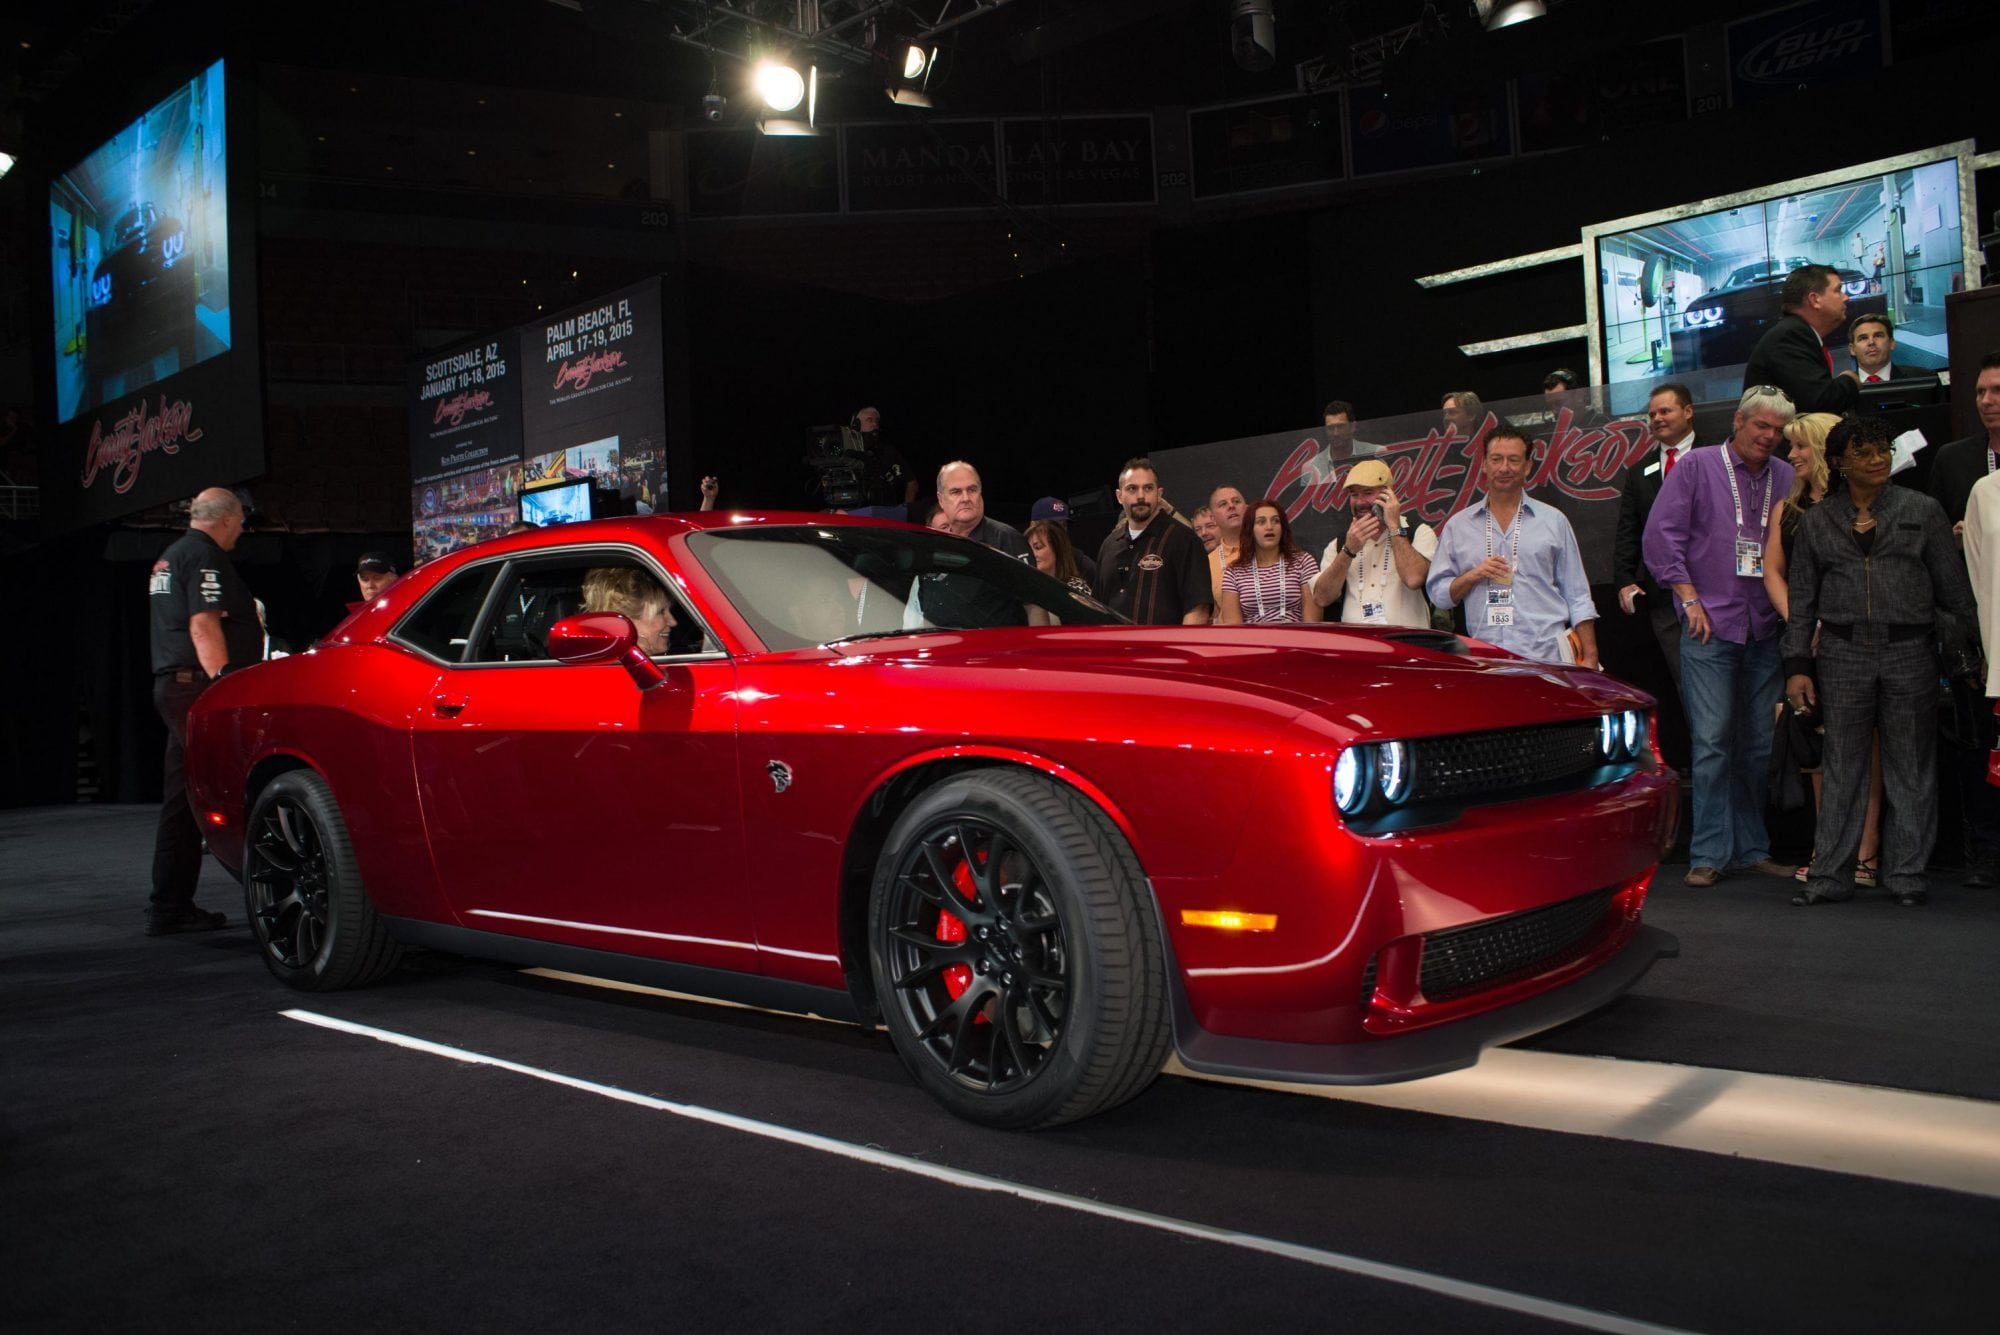 2015 Dodge Challenger SRT Hellcat VIN0001 Raises $1.65M for Charity ...